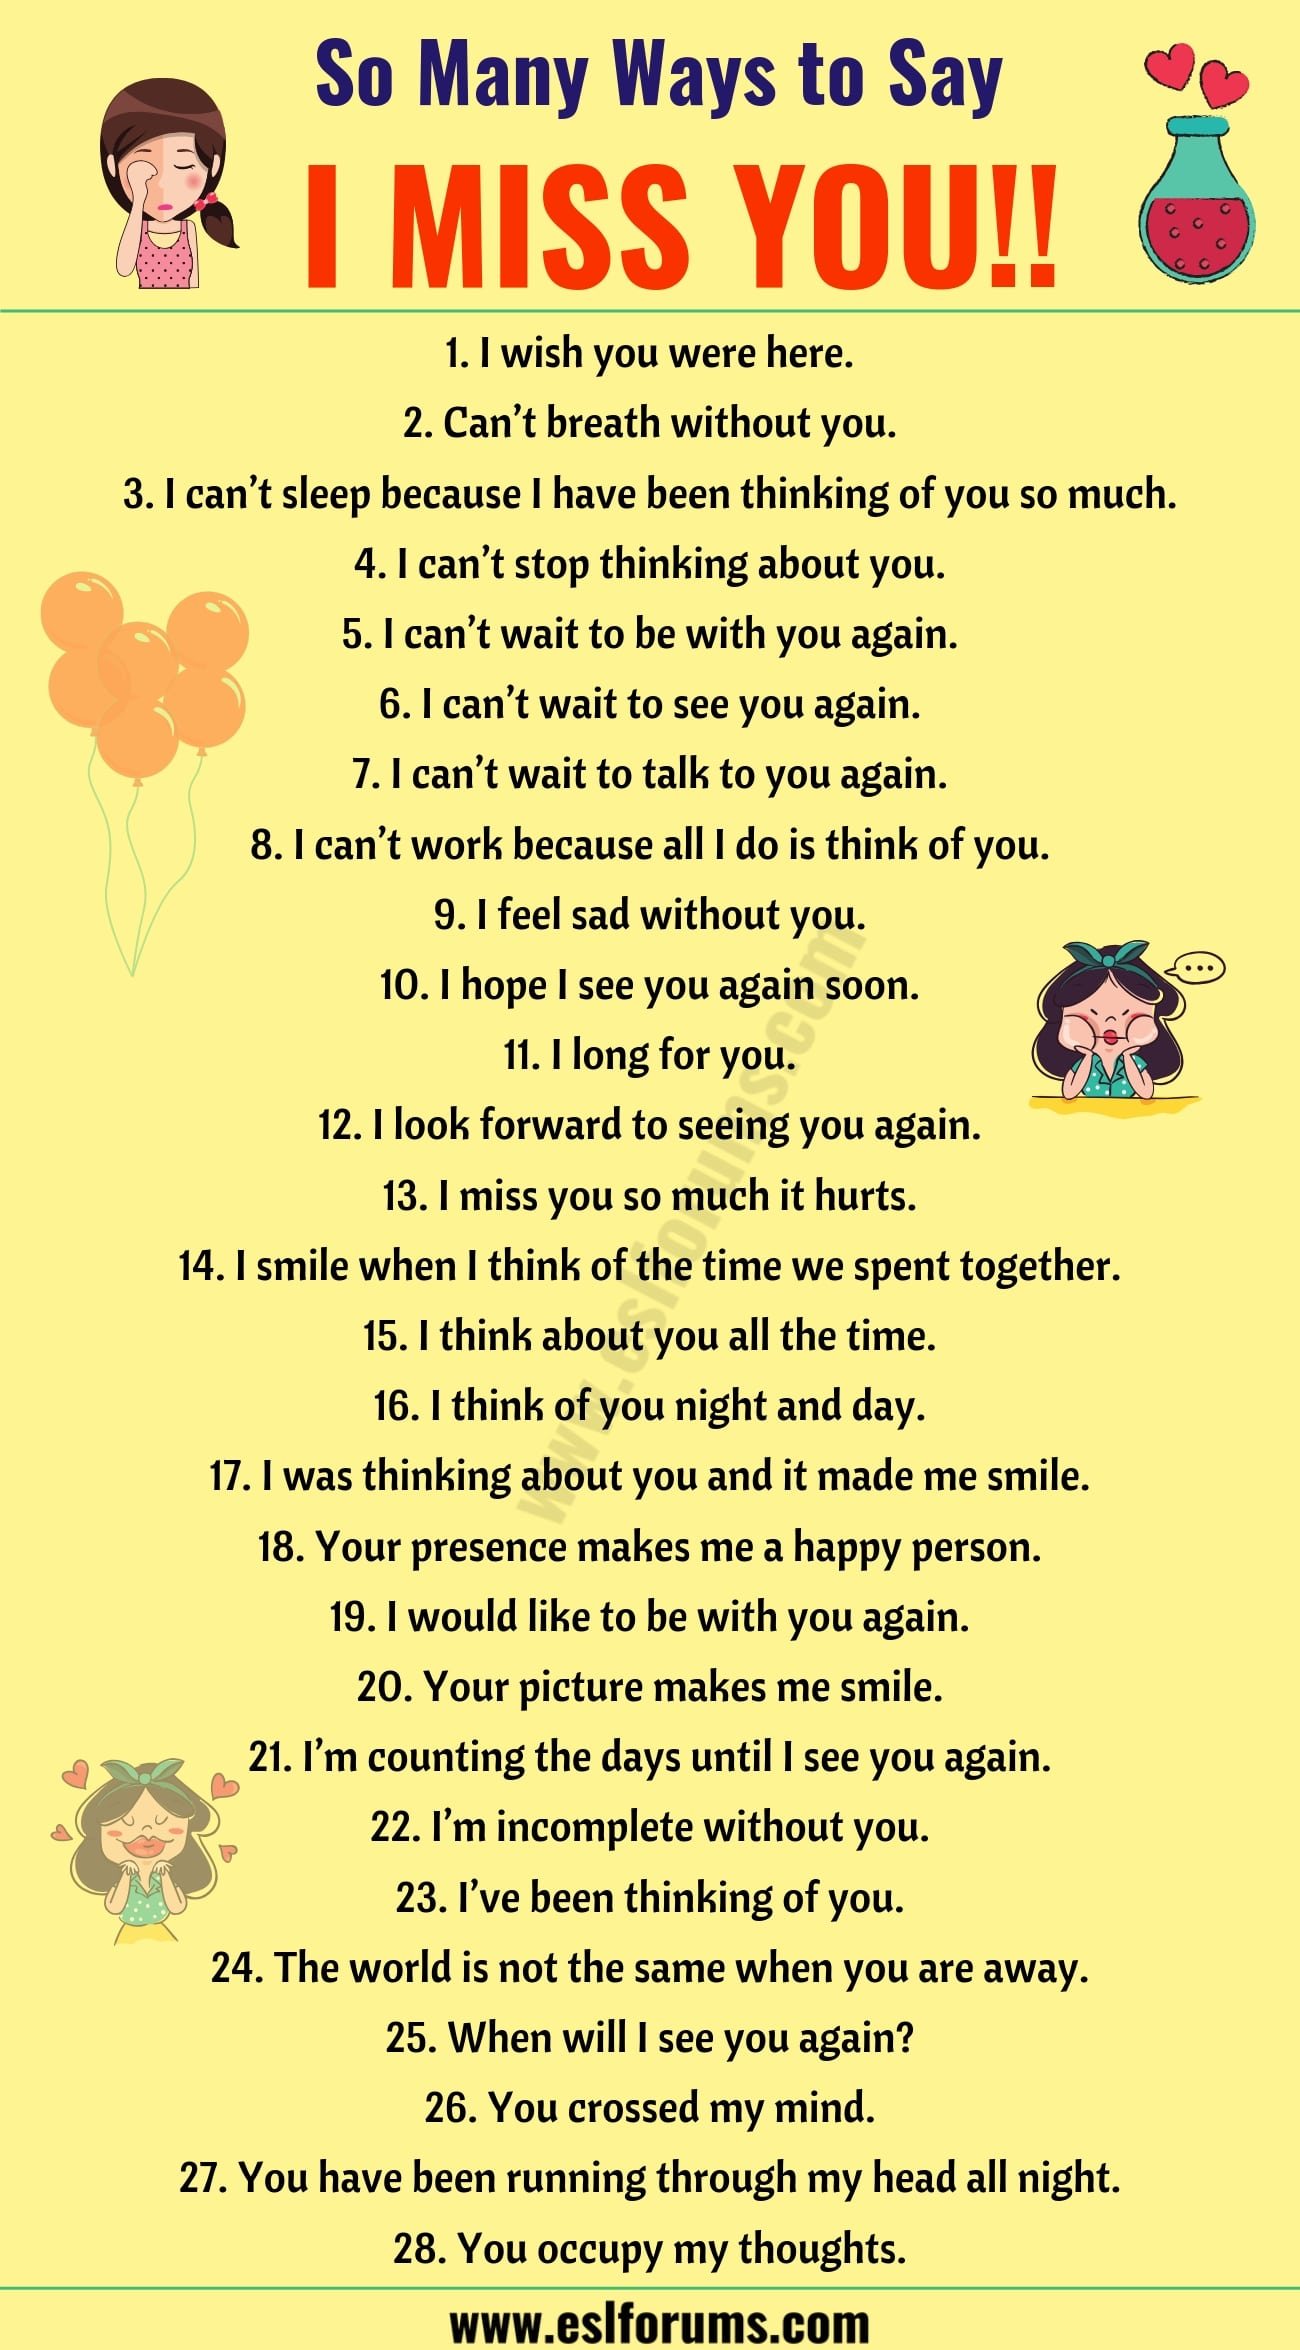 I Miss you Quotes: 30 Romantic Ways to Say I MISS YOU! in English